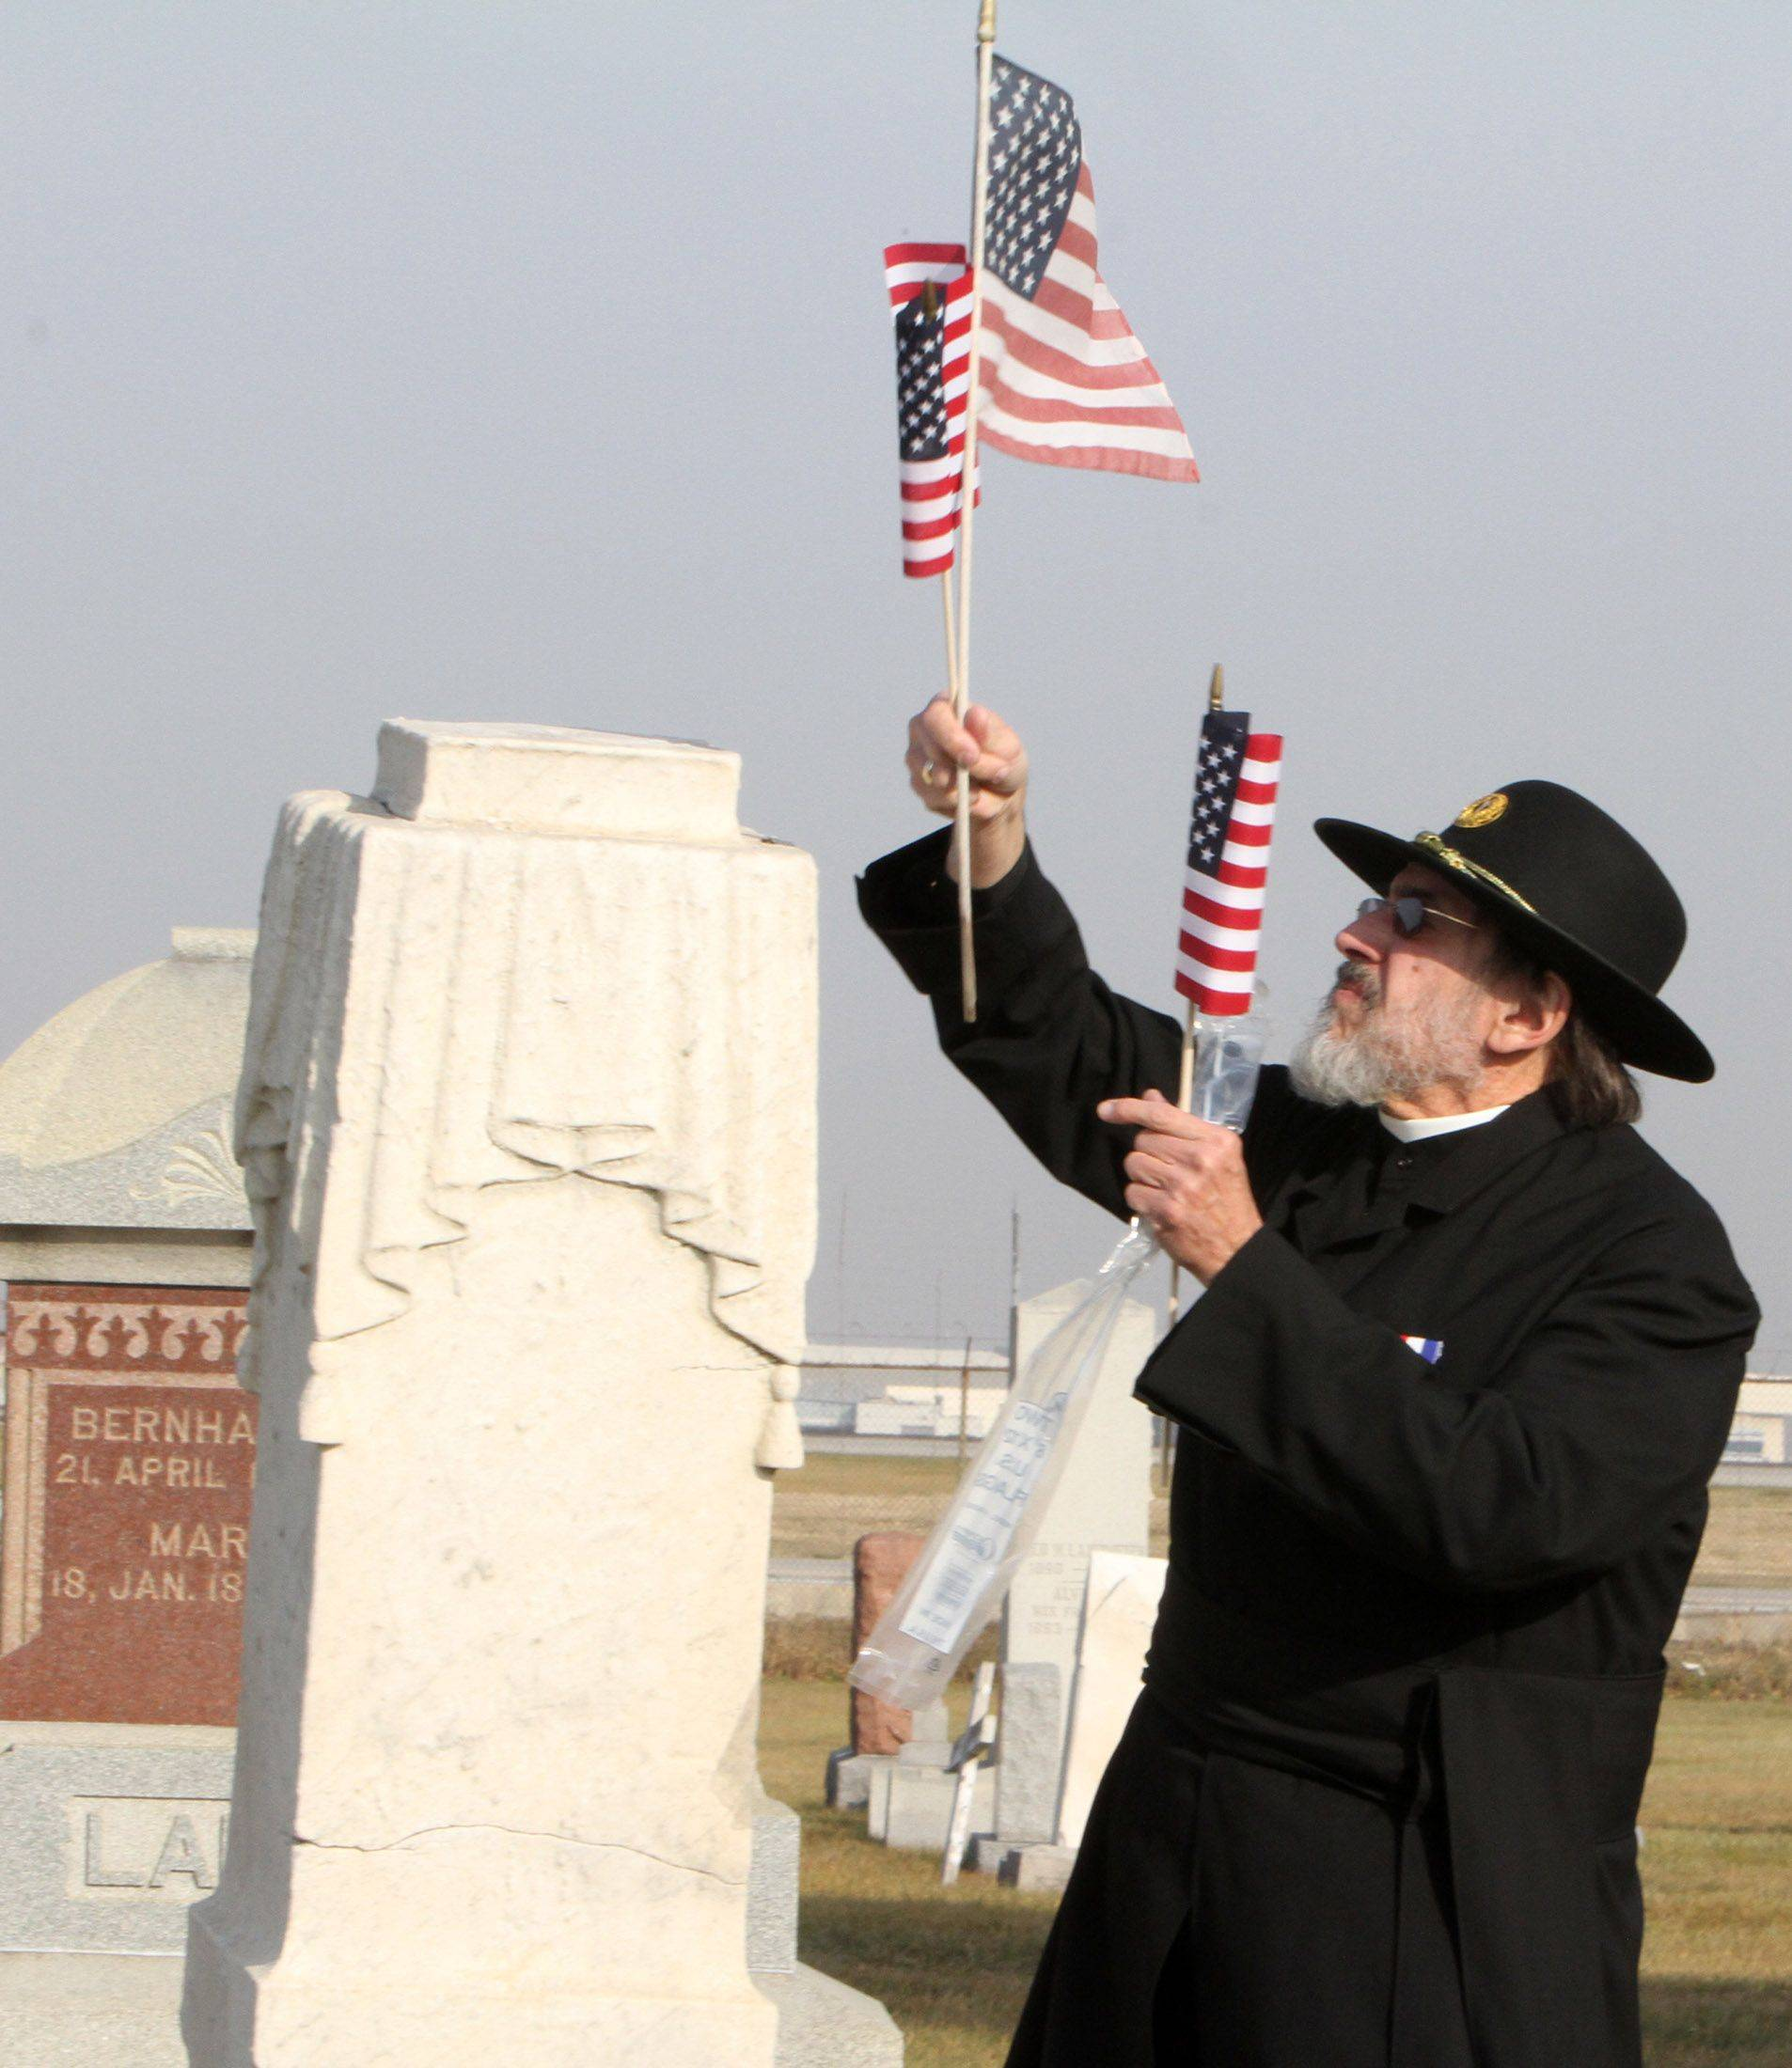 Jerry Kowalski, of Elmhurst, National Chaplain for the Sons of Union Veterans of the Civil War places an American Flag at the stone of the Civil War veteran after the memorial ceremony on Veterans Day at Johannes Cemetery just south of O'Hare International Airport in Chicago on Thursday, November 11.